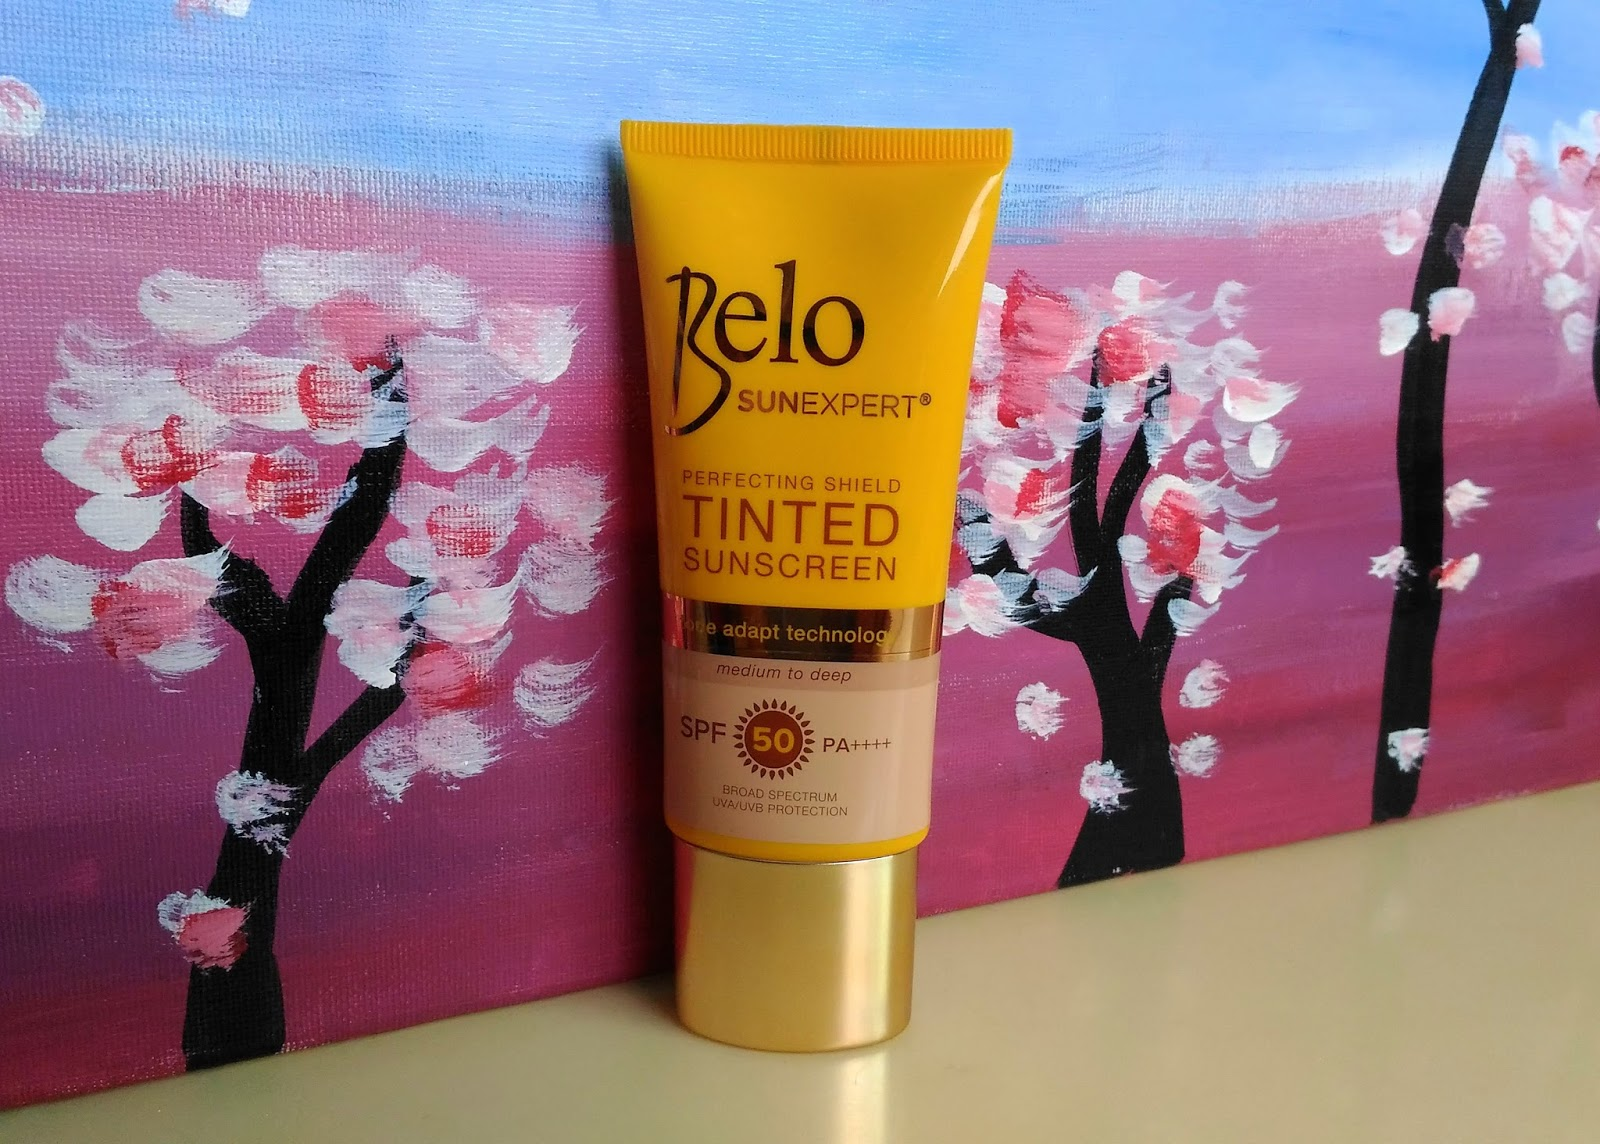 Lucky Citrine Belo Sunexpert Tinted Sunscreen Spf 50 Pa Spf50 Face It Comes In A Bright Sunny Yellow Tube But With Smooth And Sleek Cap That Has Sophisticated Feel However I Thought Part Of The Was Transparent To